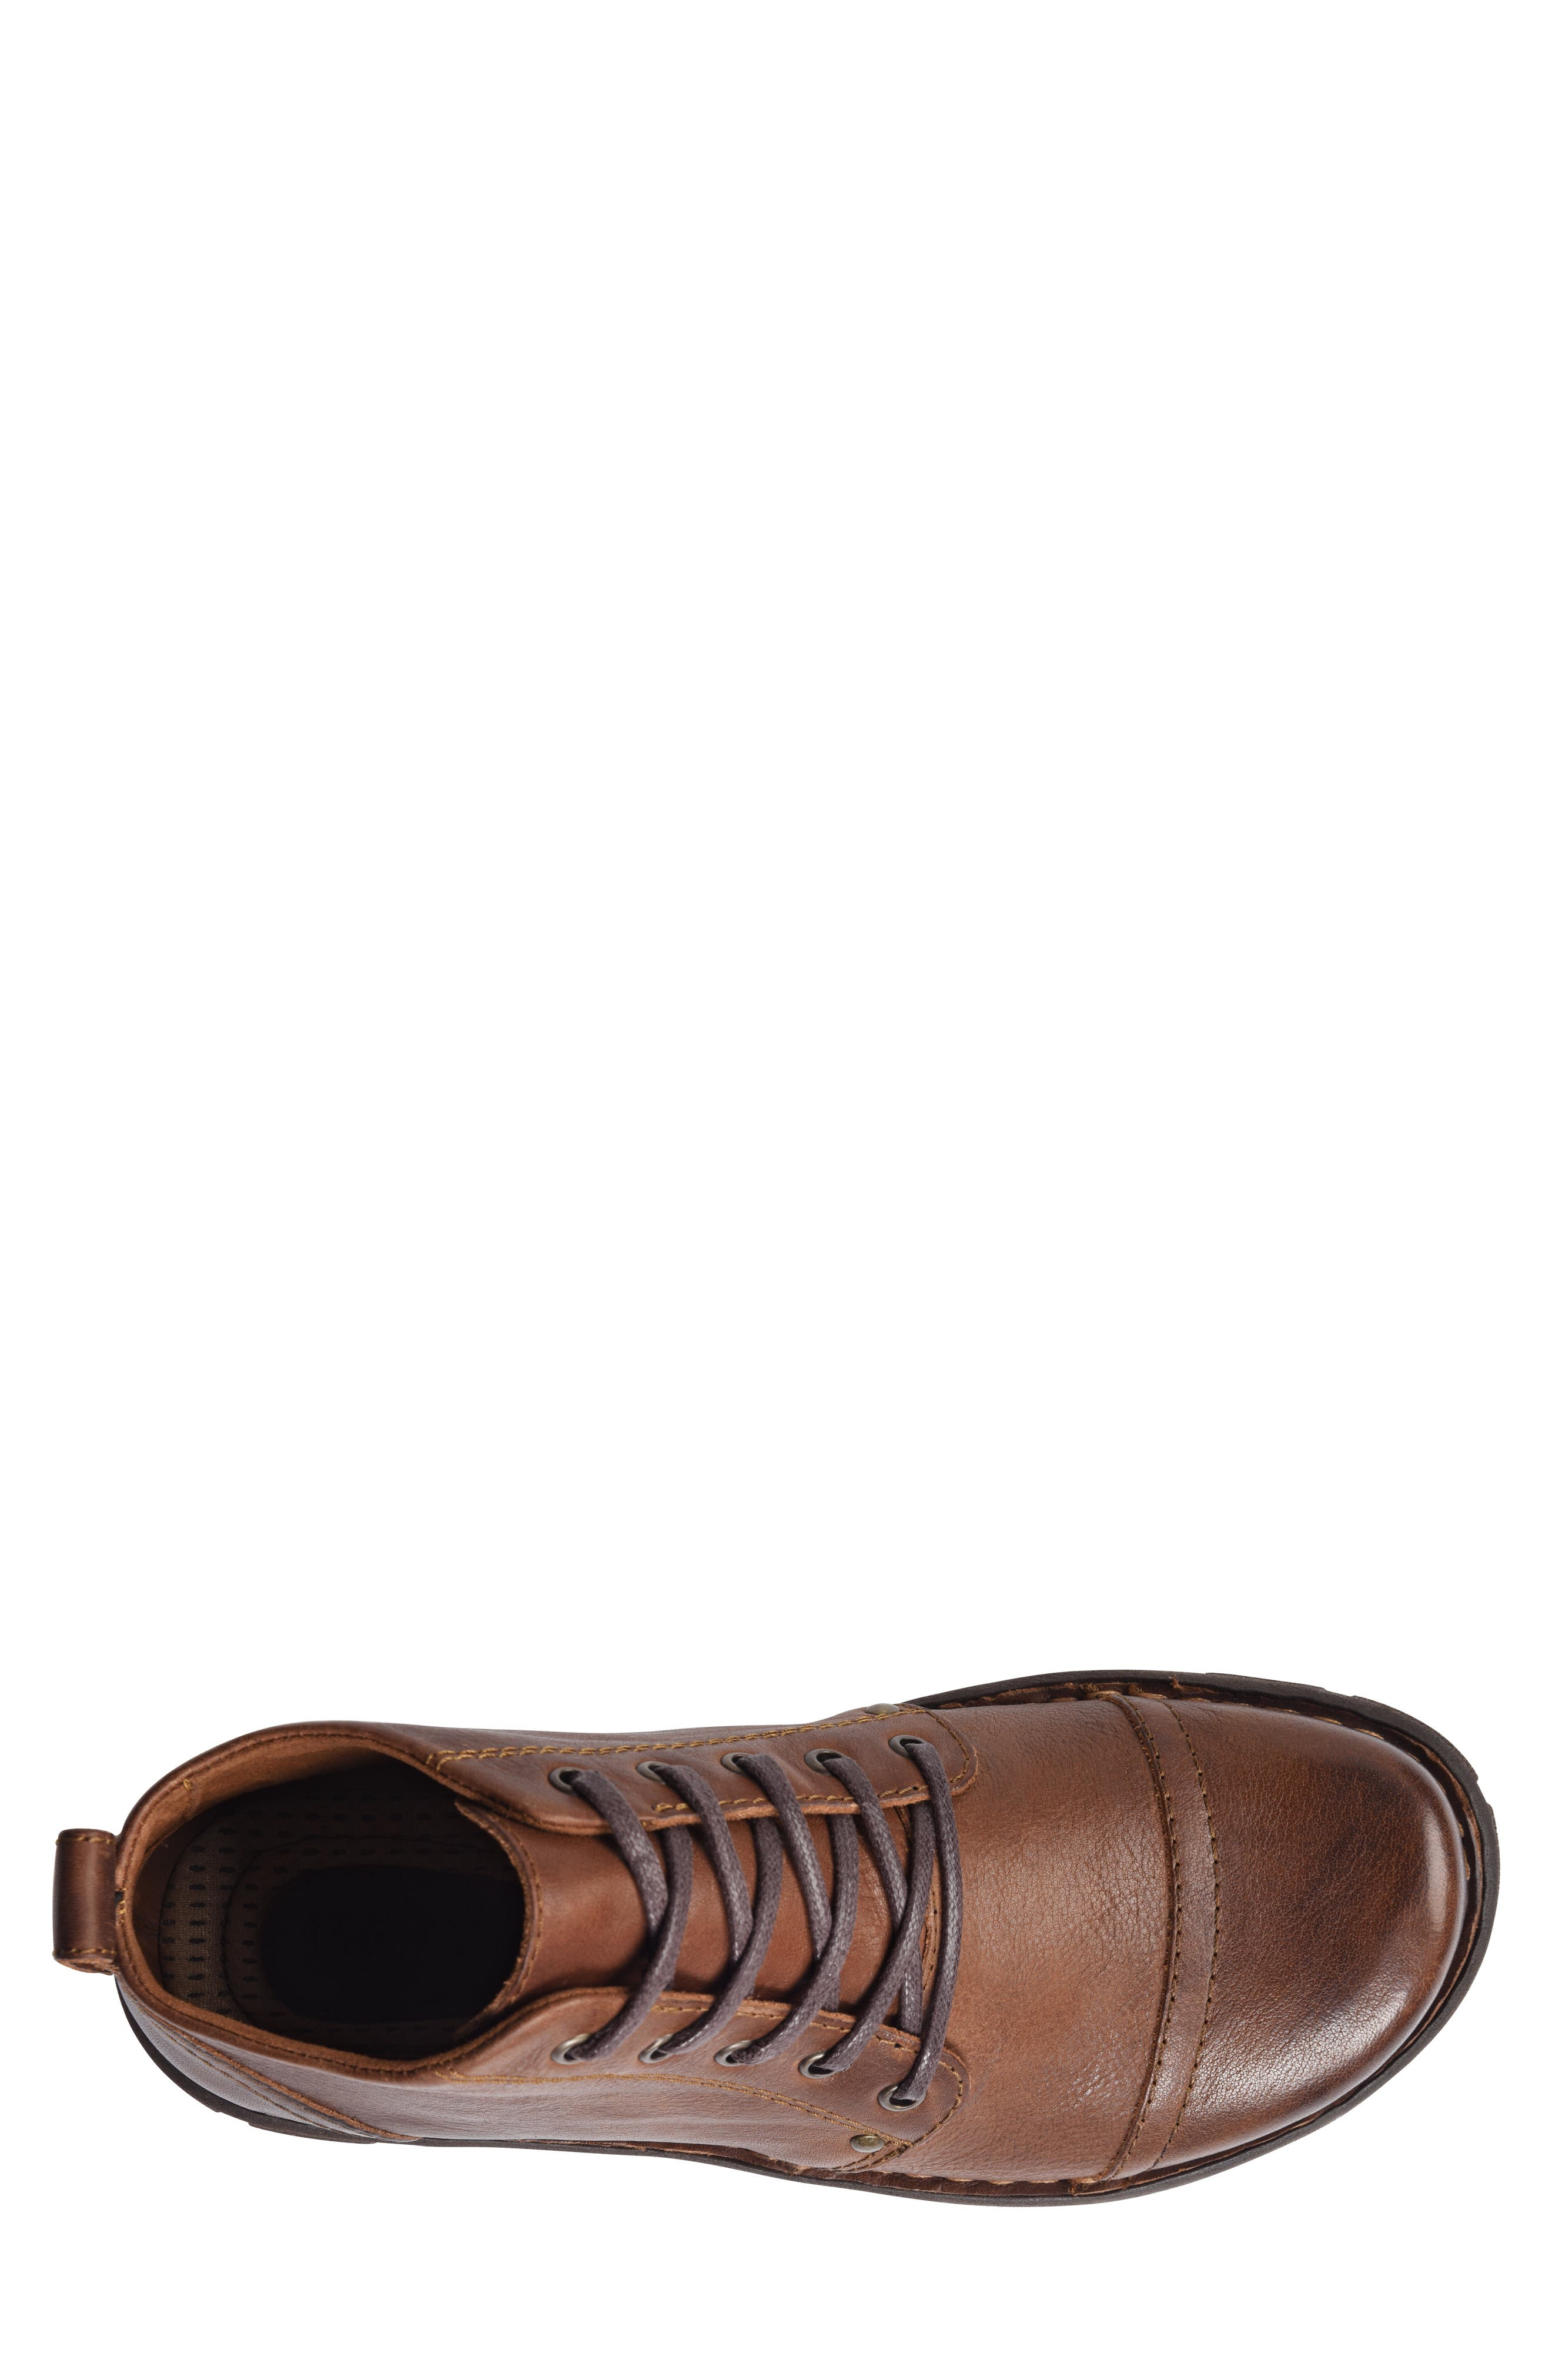 Boulder Cap Toe Boot,                             Alternate thumbnail 5, color,                             BROWN LEATHER